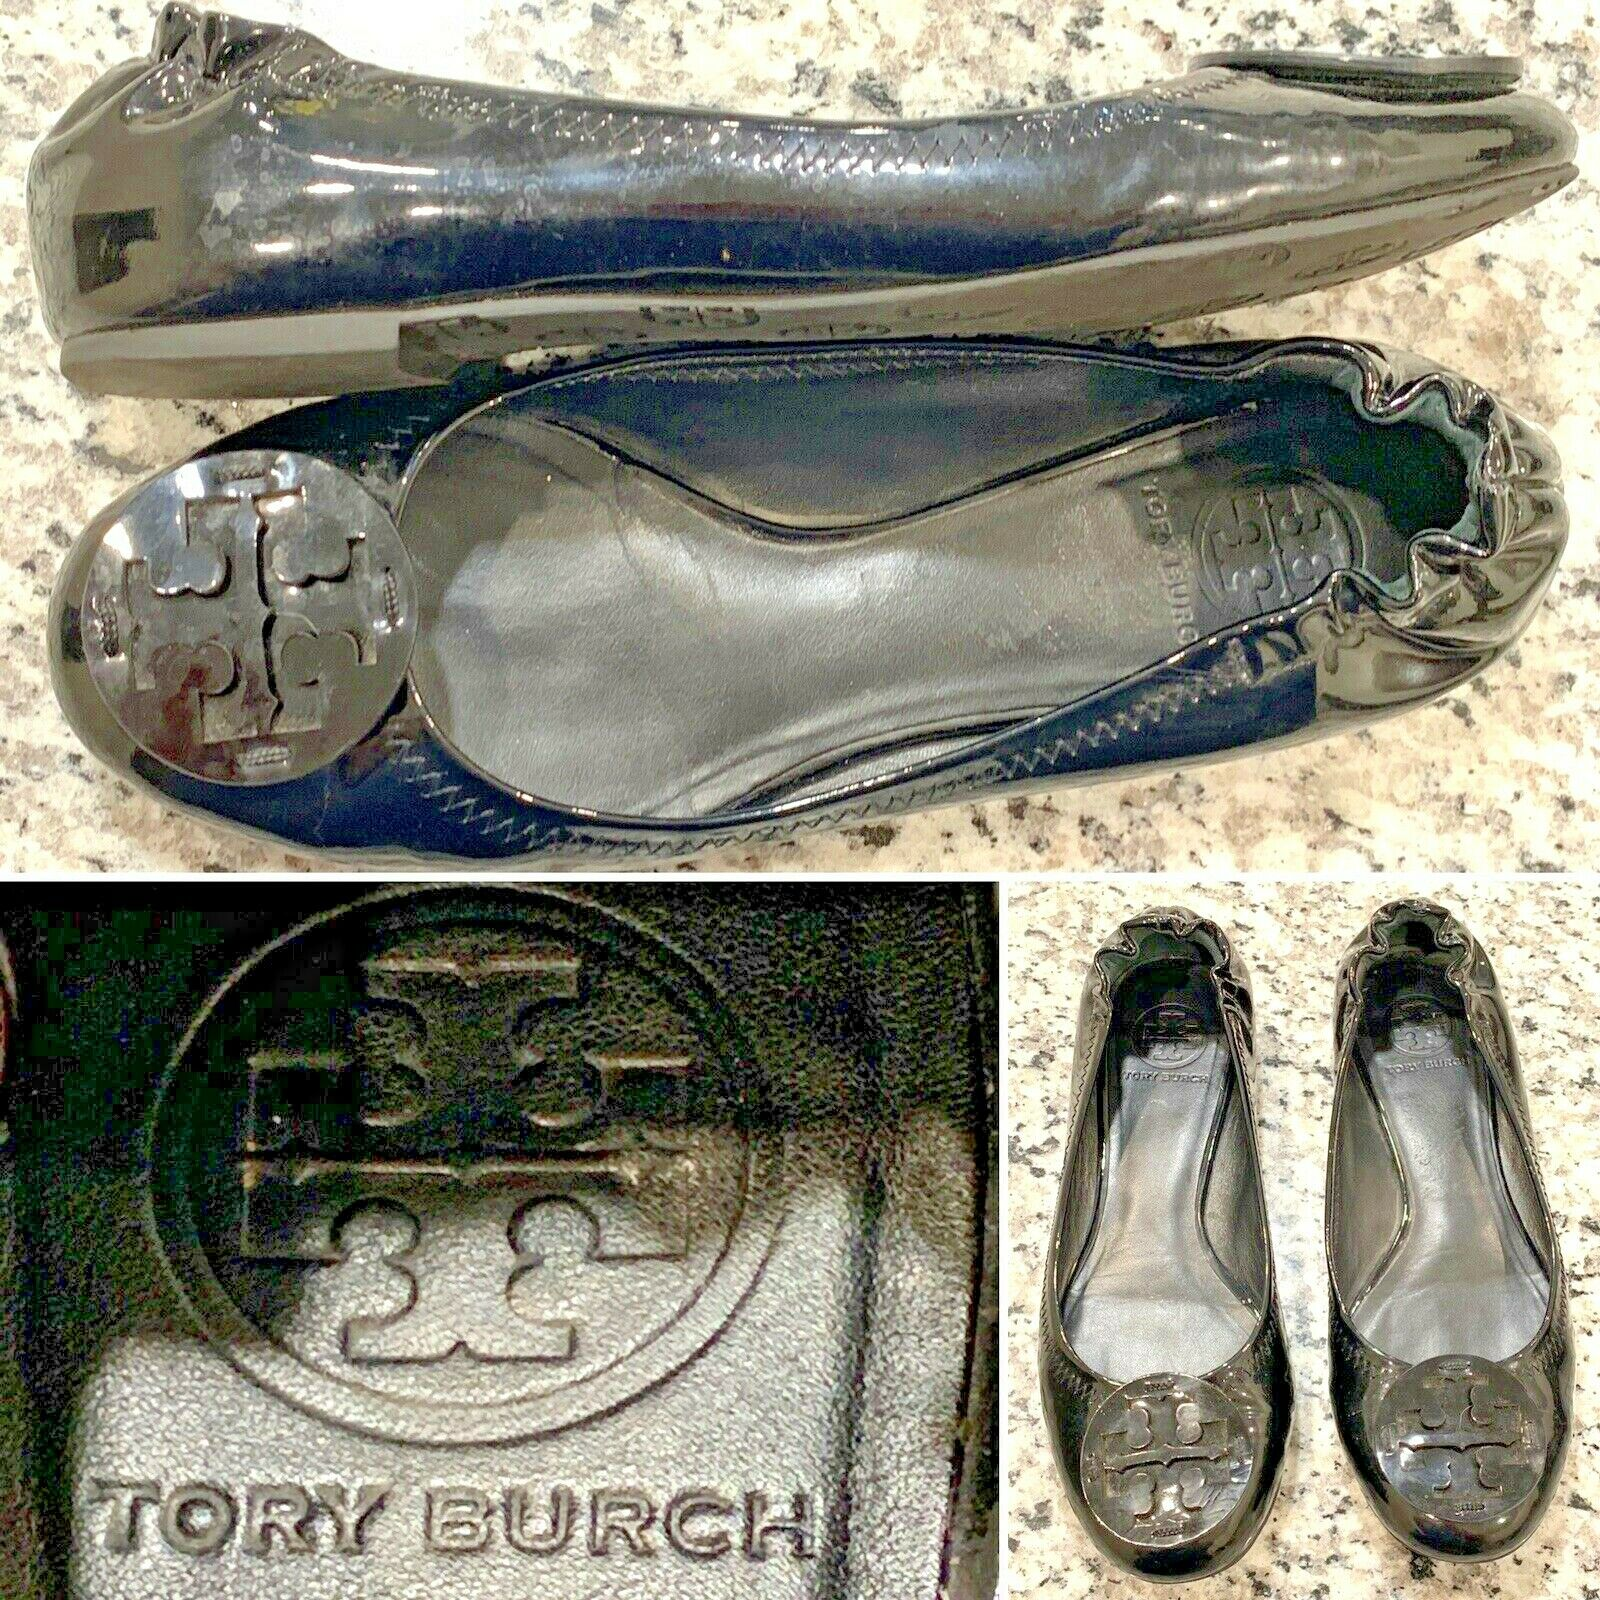 "TORY TORY TORY BURCH ""Reva"" Black Patent Leather Ballet Flat shoes Womens Size 8 bf9dc6"